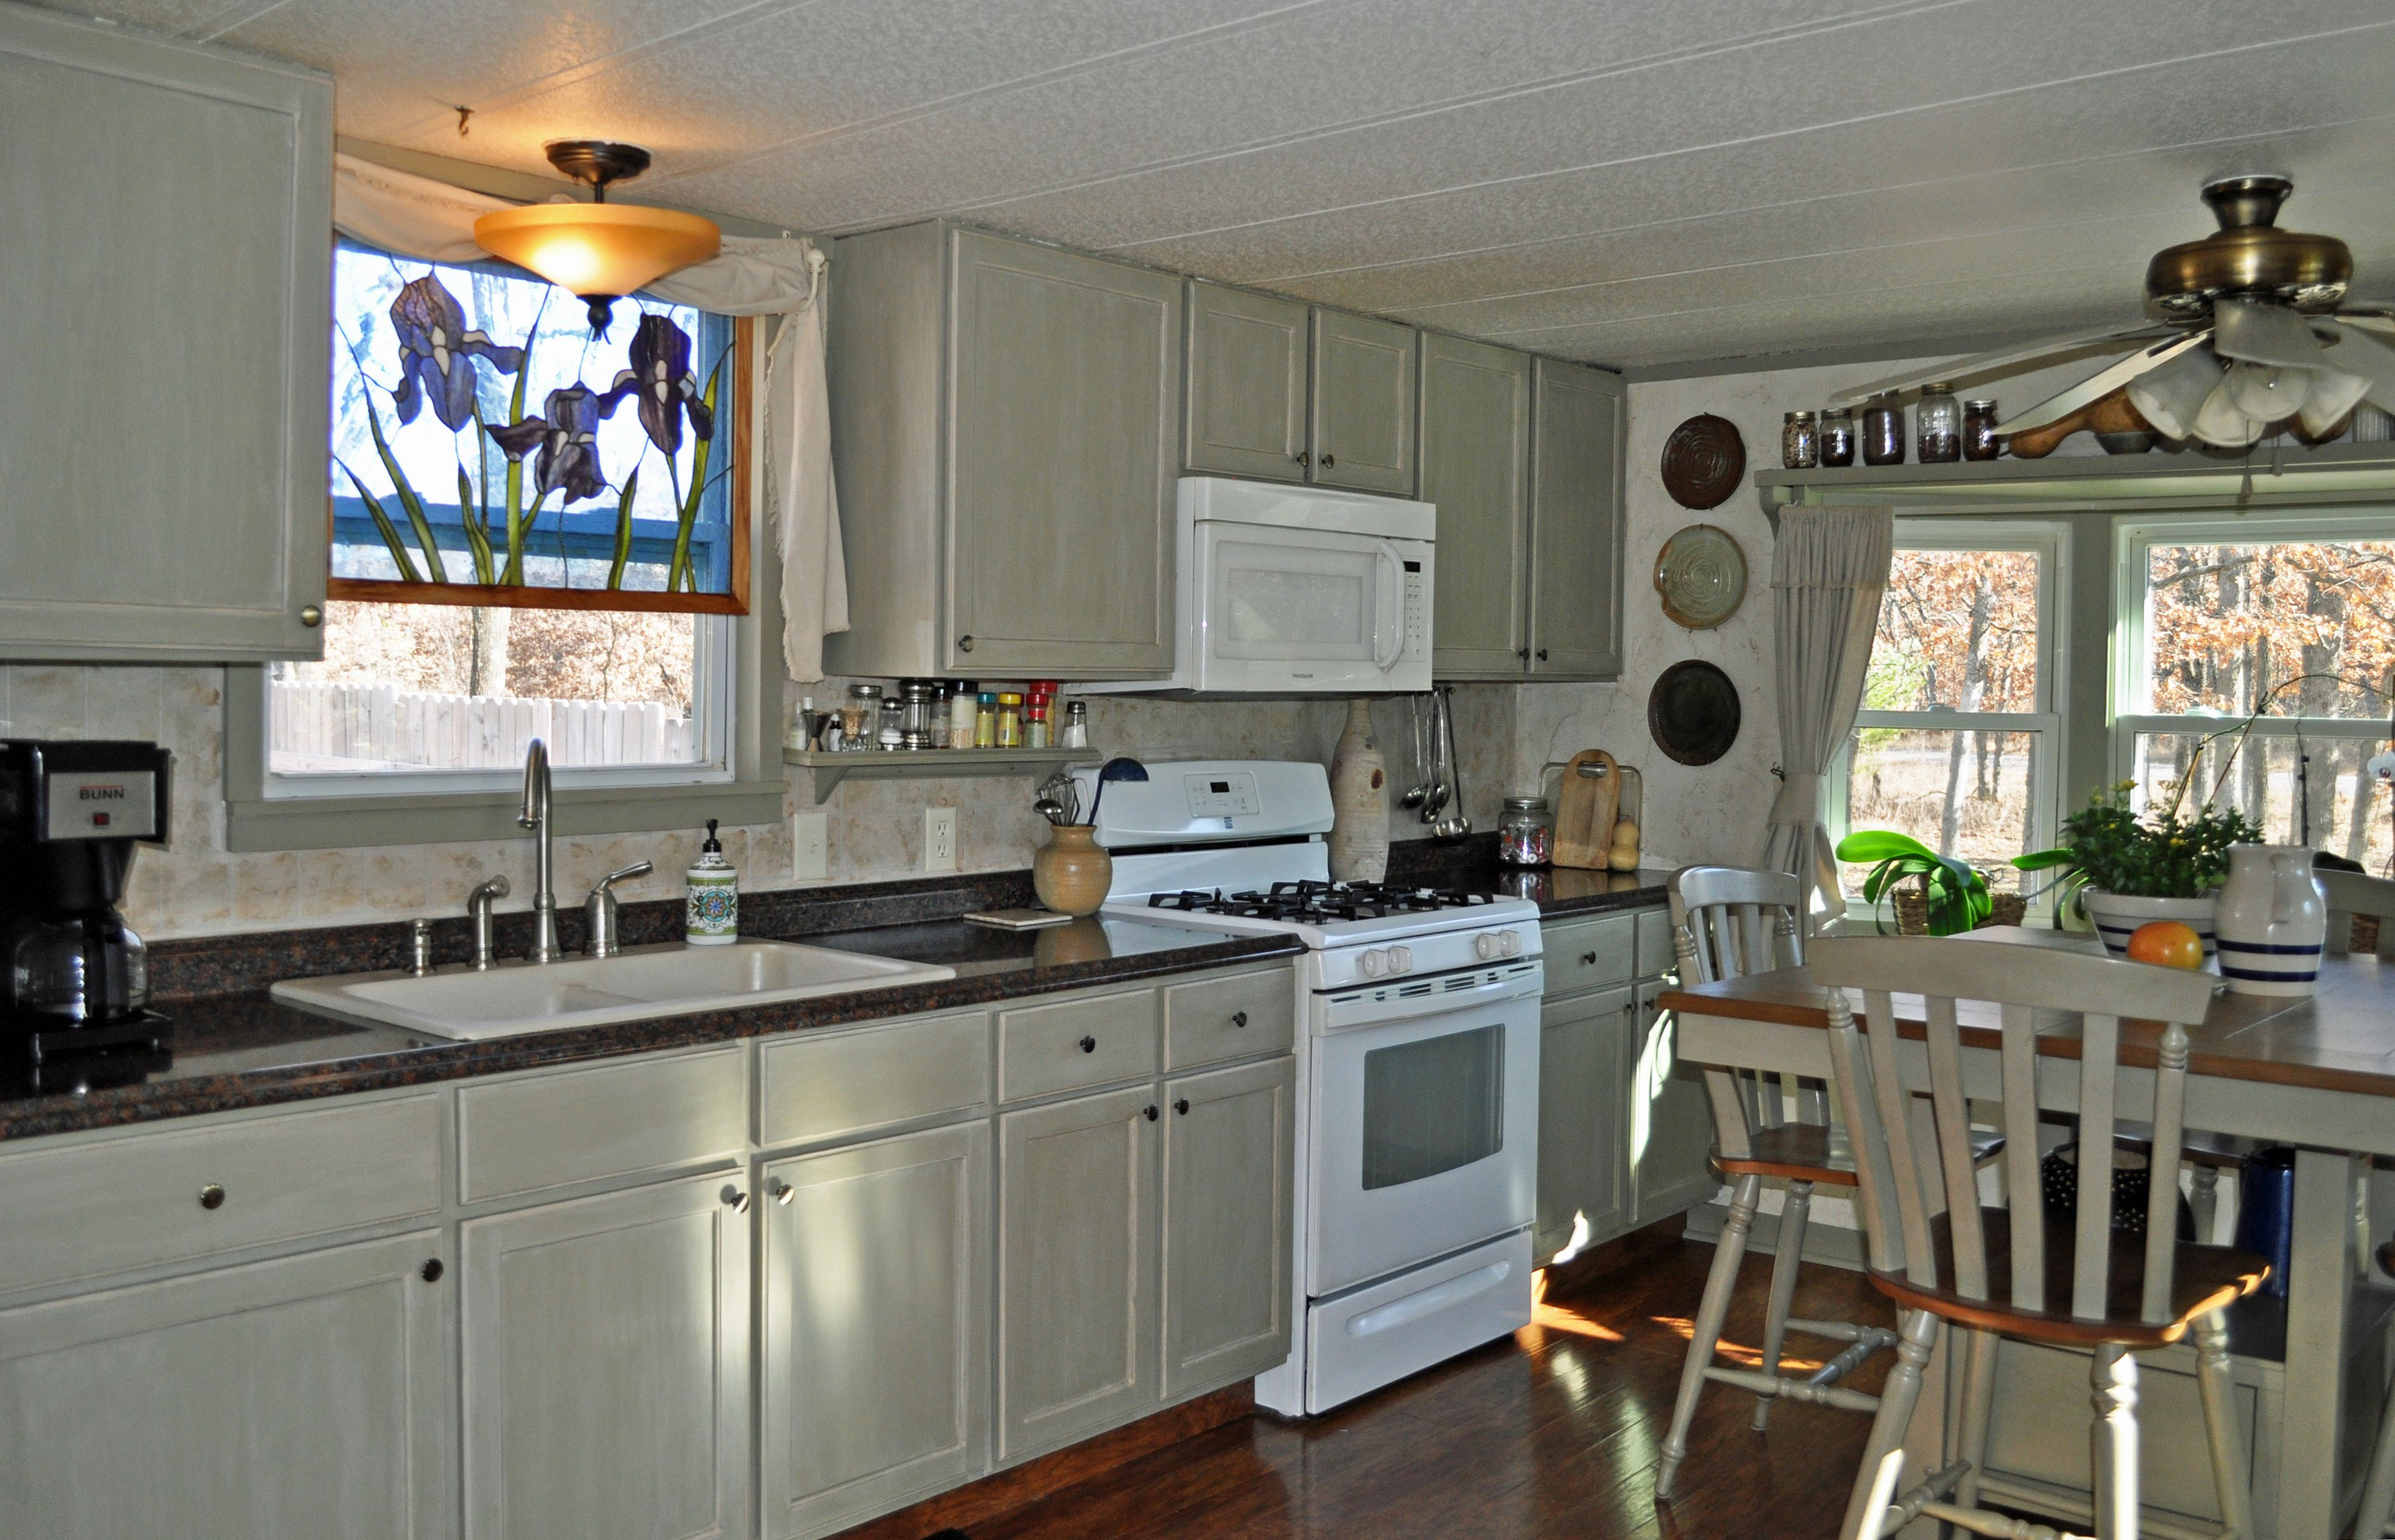 Single Wide Mobile Home Diy Remodel Makeover Small Kitchen Low